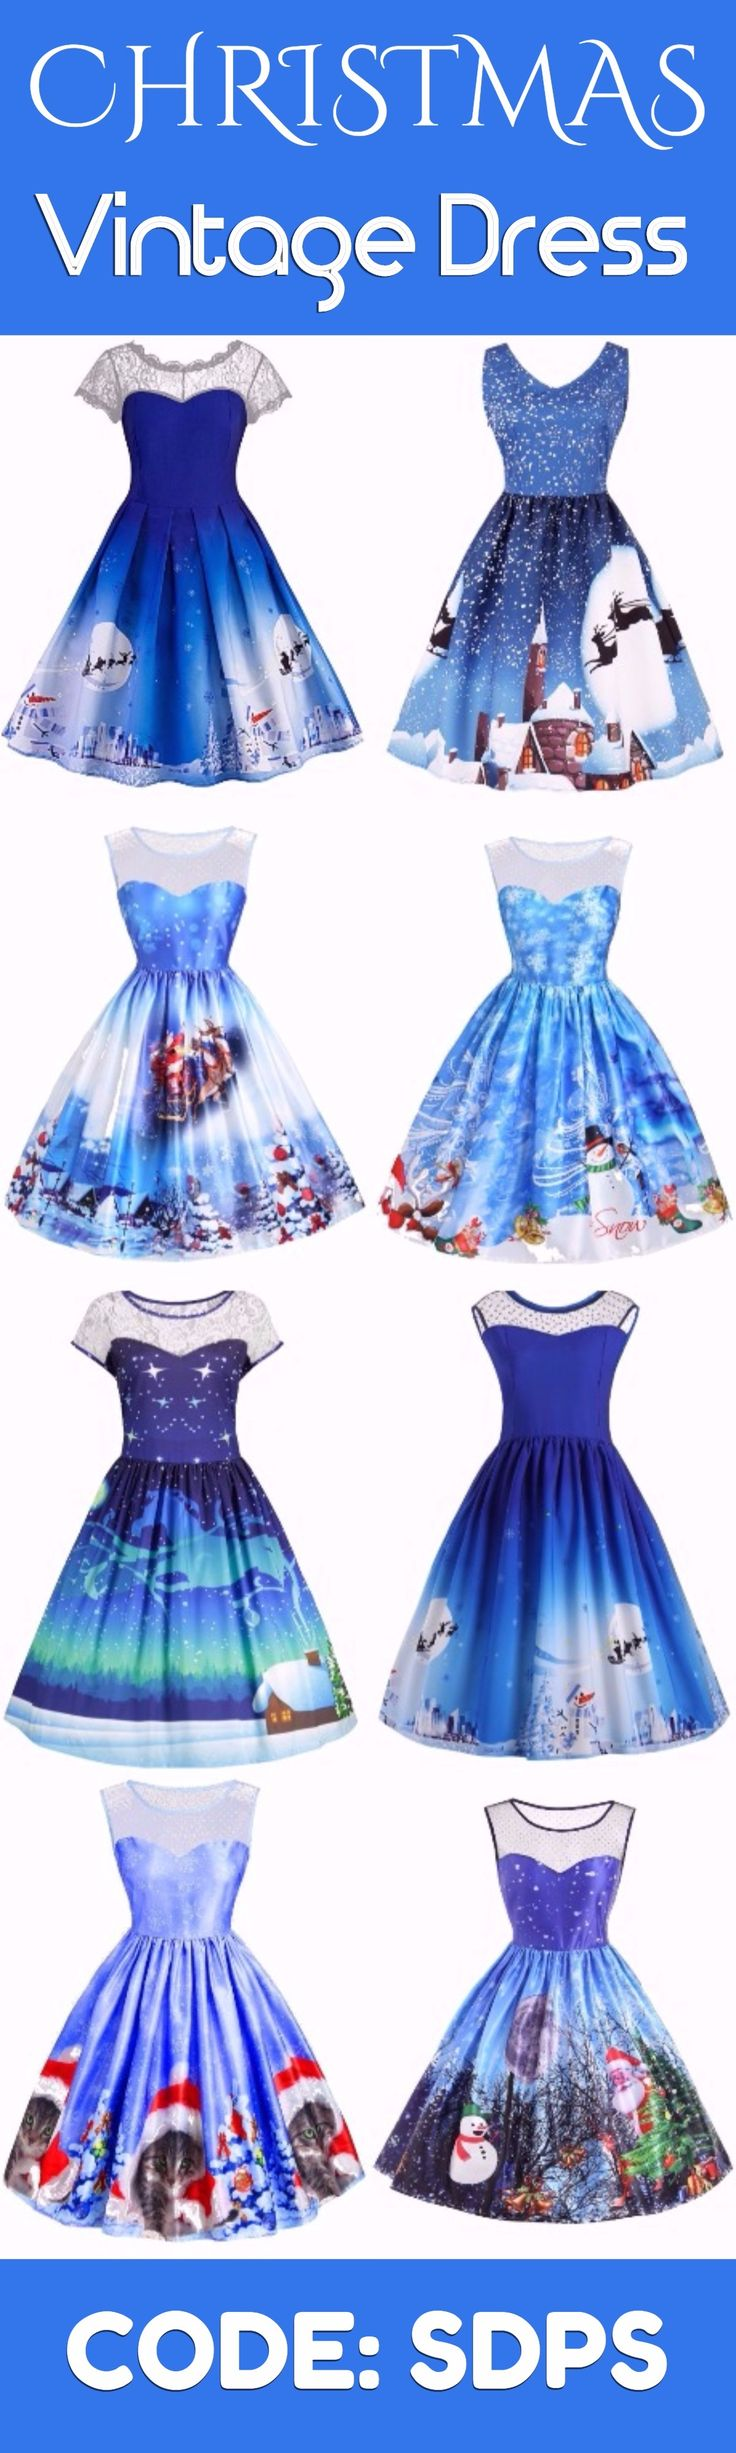 #Vintage #Dress Merry Christmas | Start at only $10 | Blue Fantasy | Sammydress.com